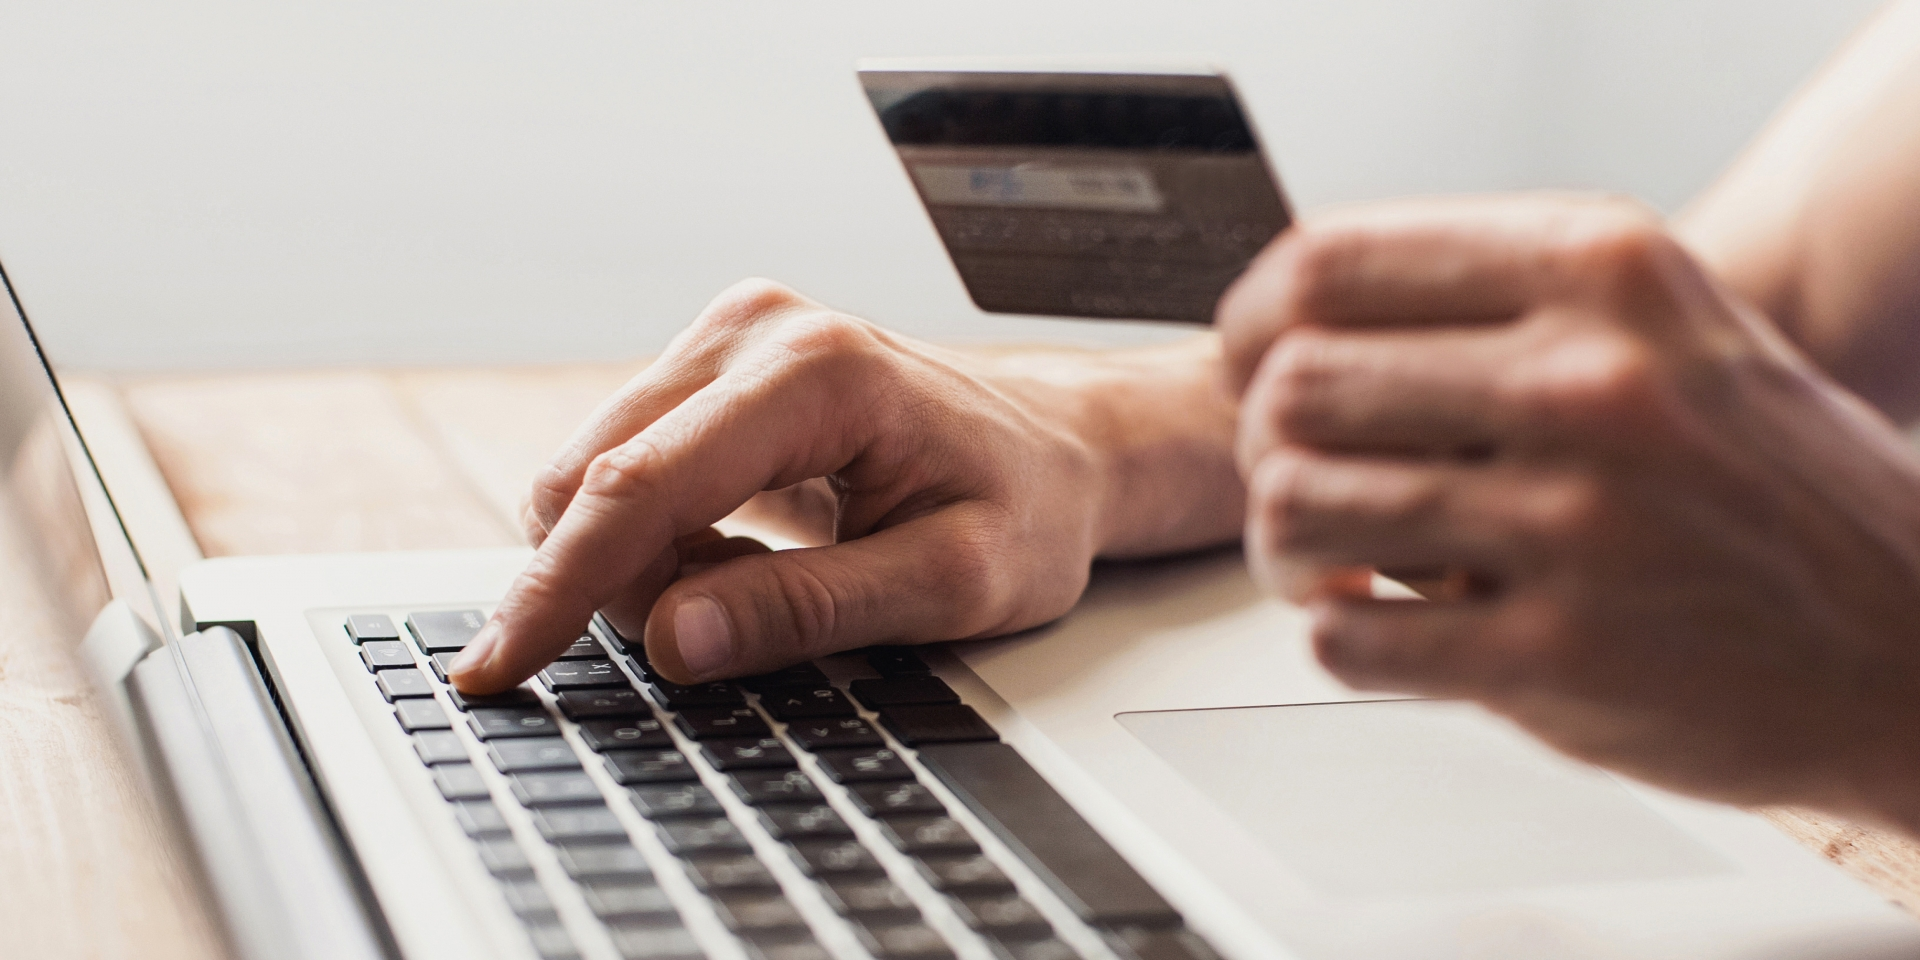 Close up of man typing on laptop with credit card in other hand.